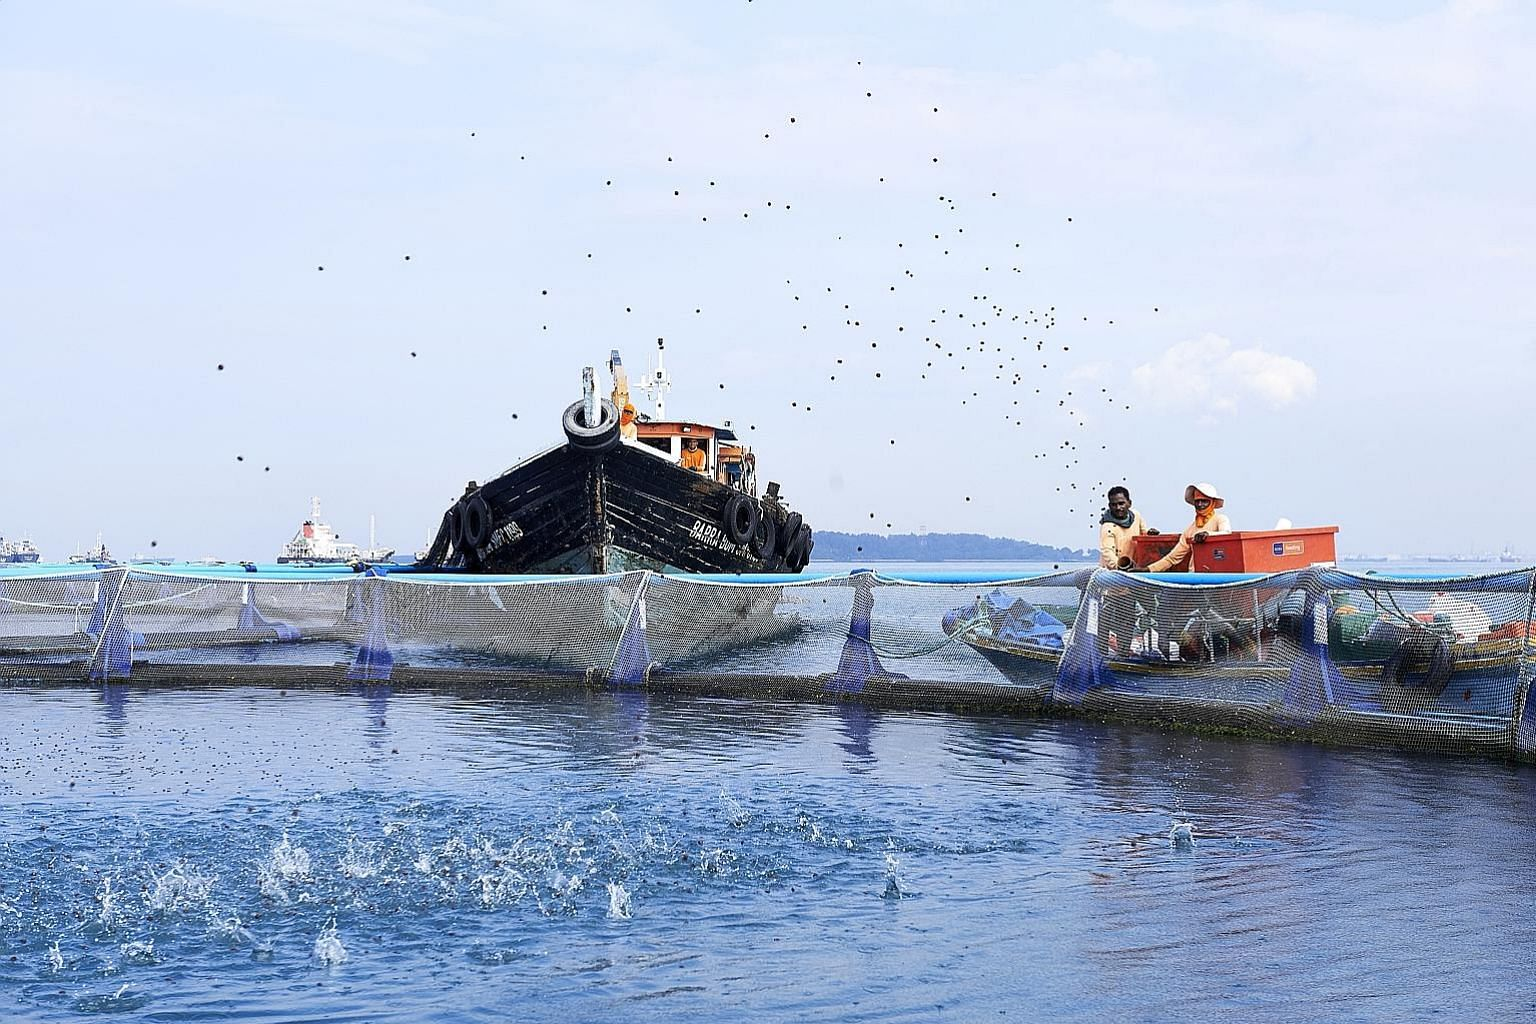 Workers at Barramundi Asia, a fish farm off Singapore's southern coast, manually operating a feeding machine. The farm is considering investing in an automatic remote feeding system that will allow workers to monitor how much feed is given, and wheth